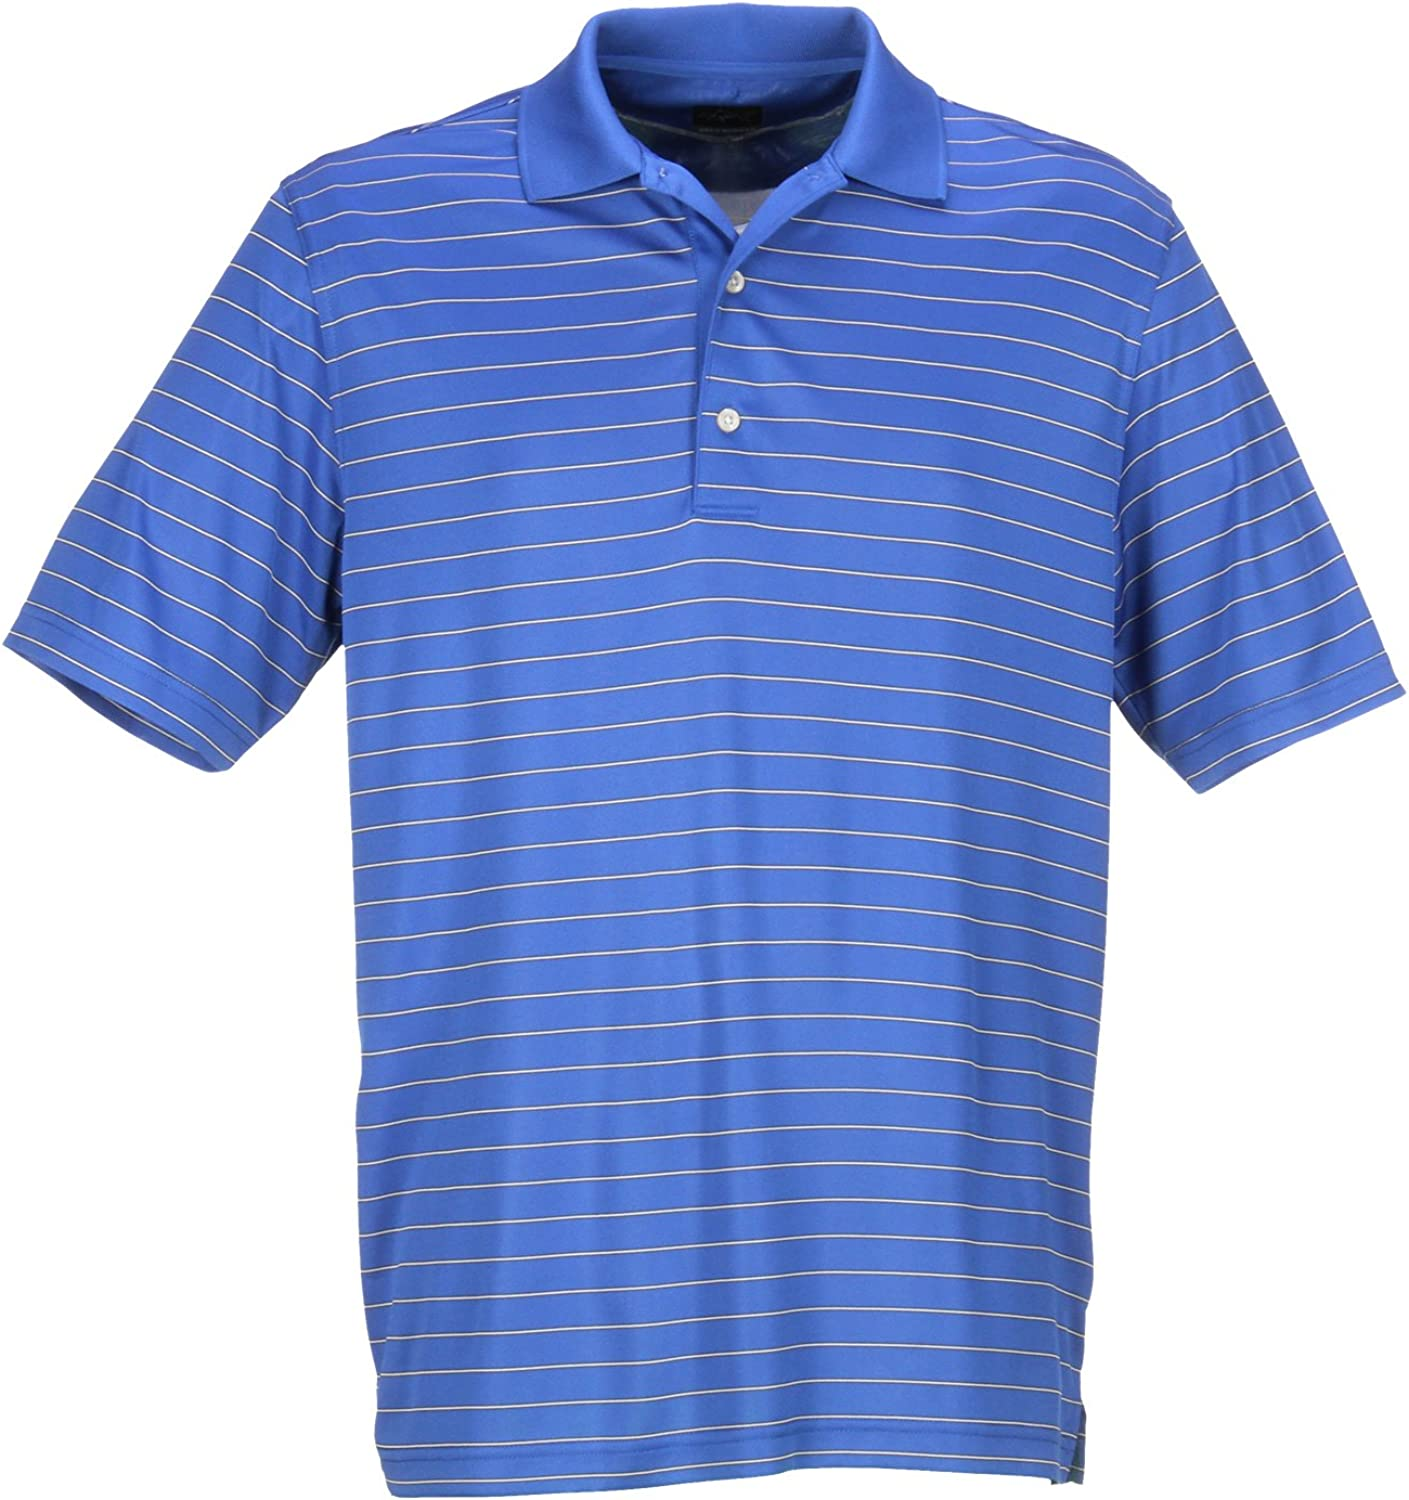 Greg Norman Collection Max 66% OFF Men's Protek Micro Polo 55% OFF Shirt Lux Stripe